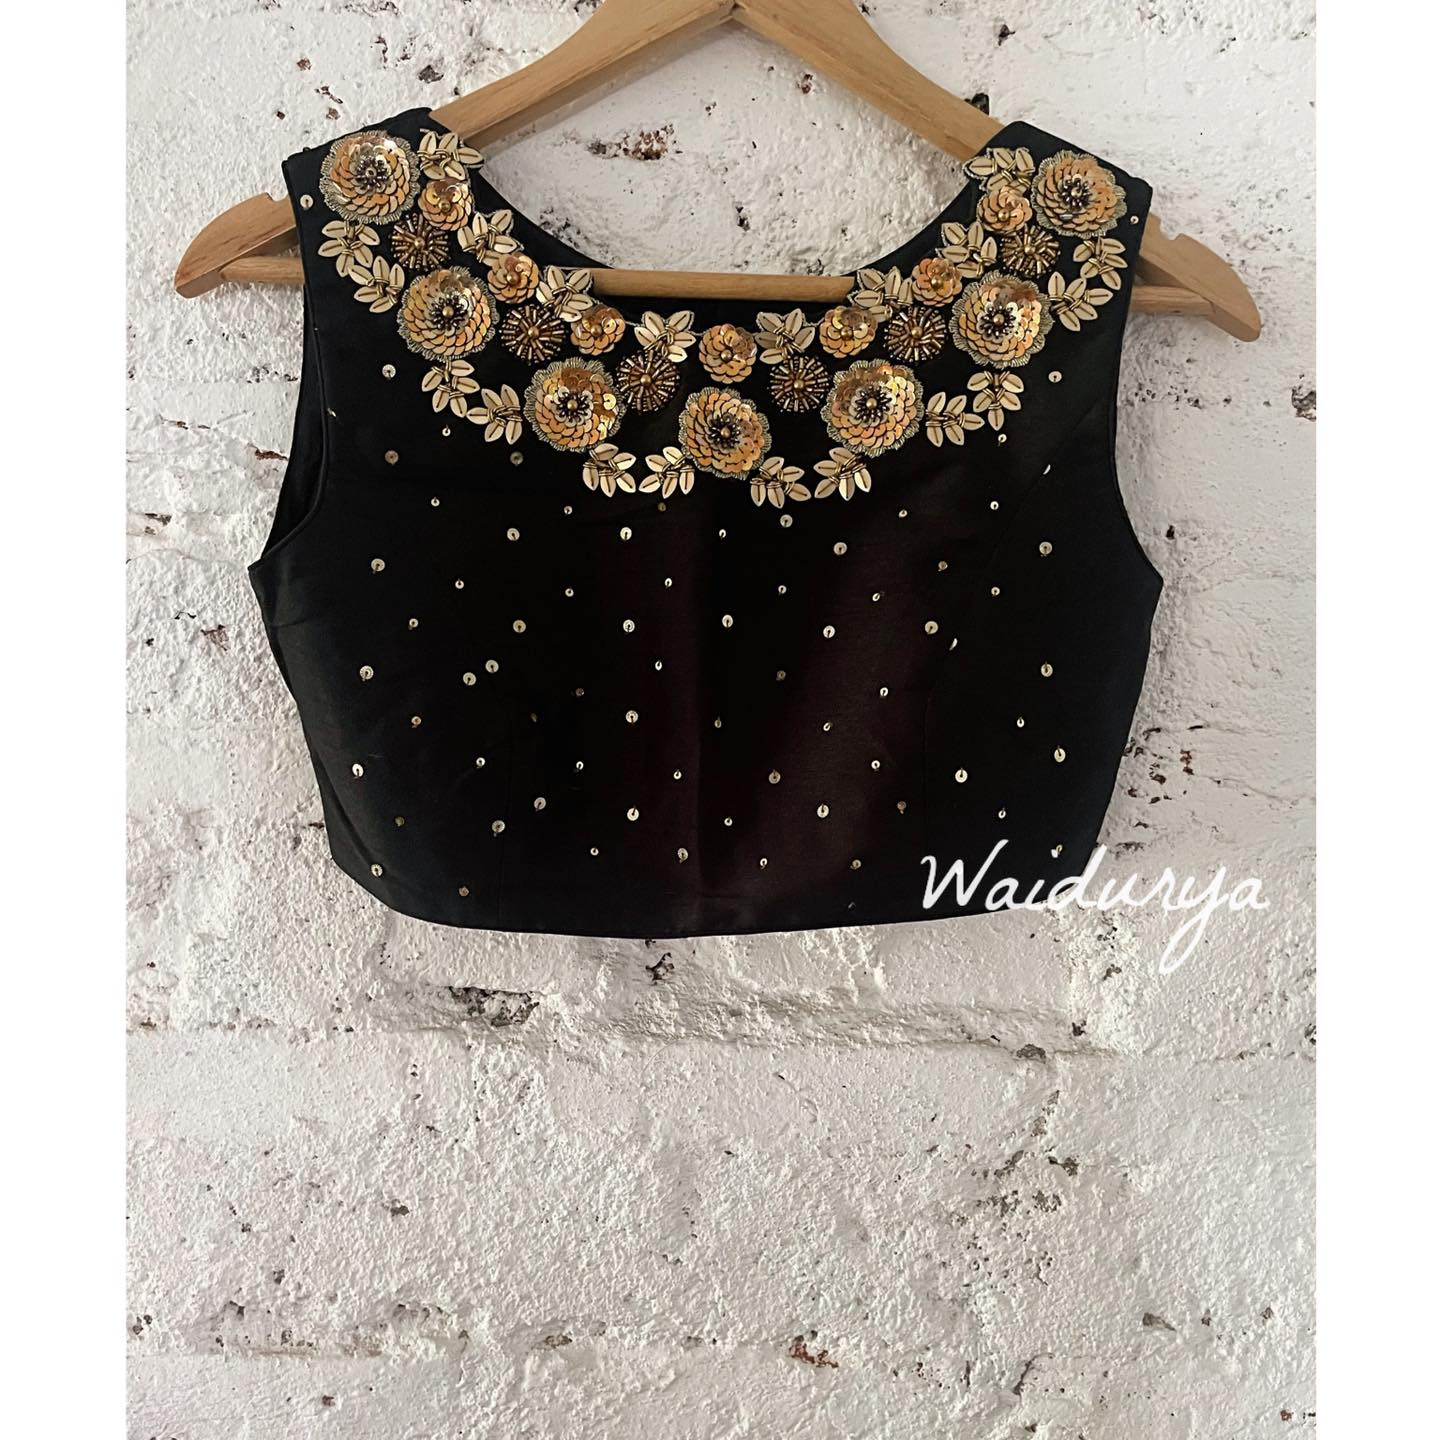 Stunning black sleeveless blouse design with hand embroidery zardosi and multi sequin work.  2021-06-21